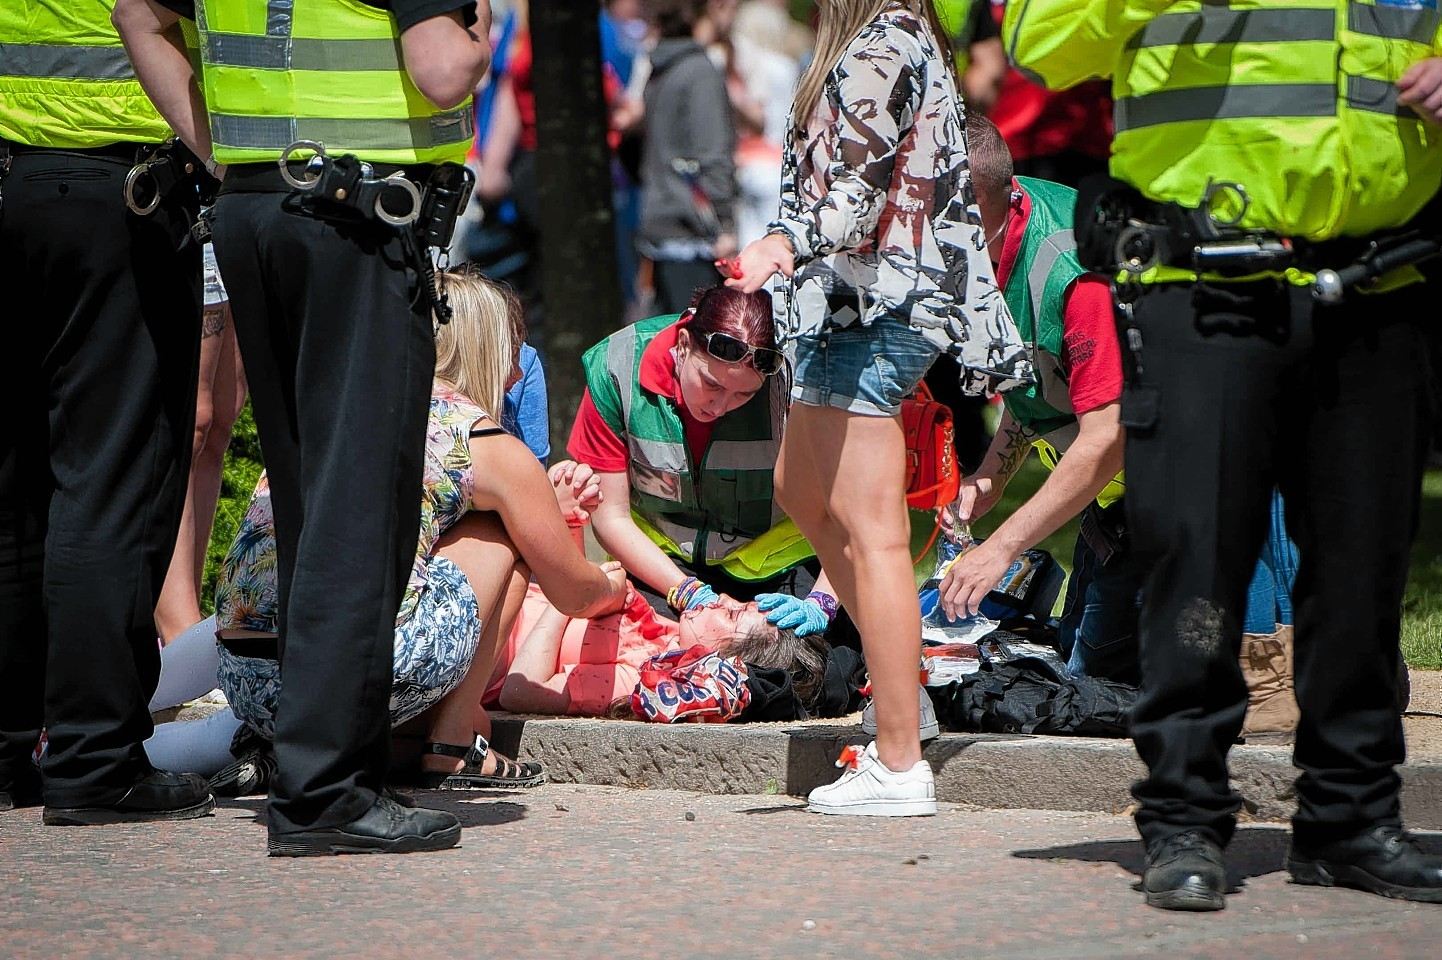 The girl is tended to as she lies on the ground after being hit by a bottle thrown during the parade